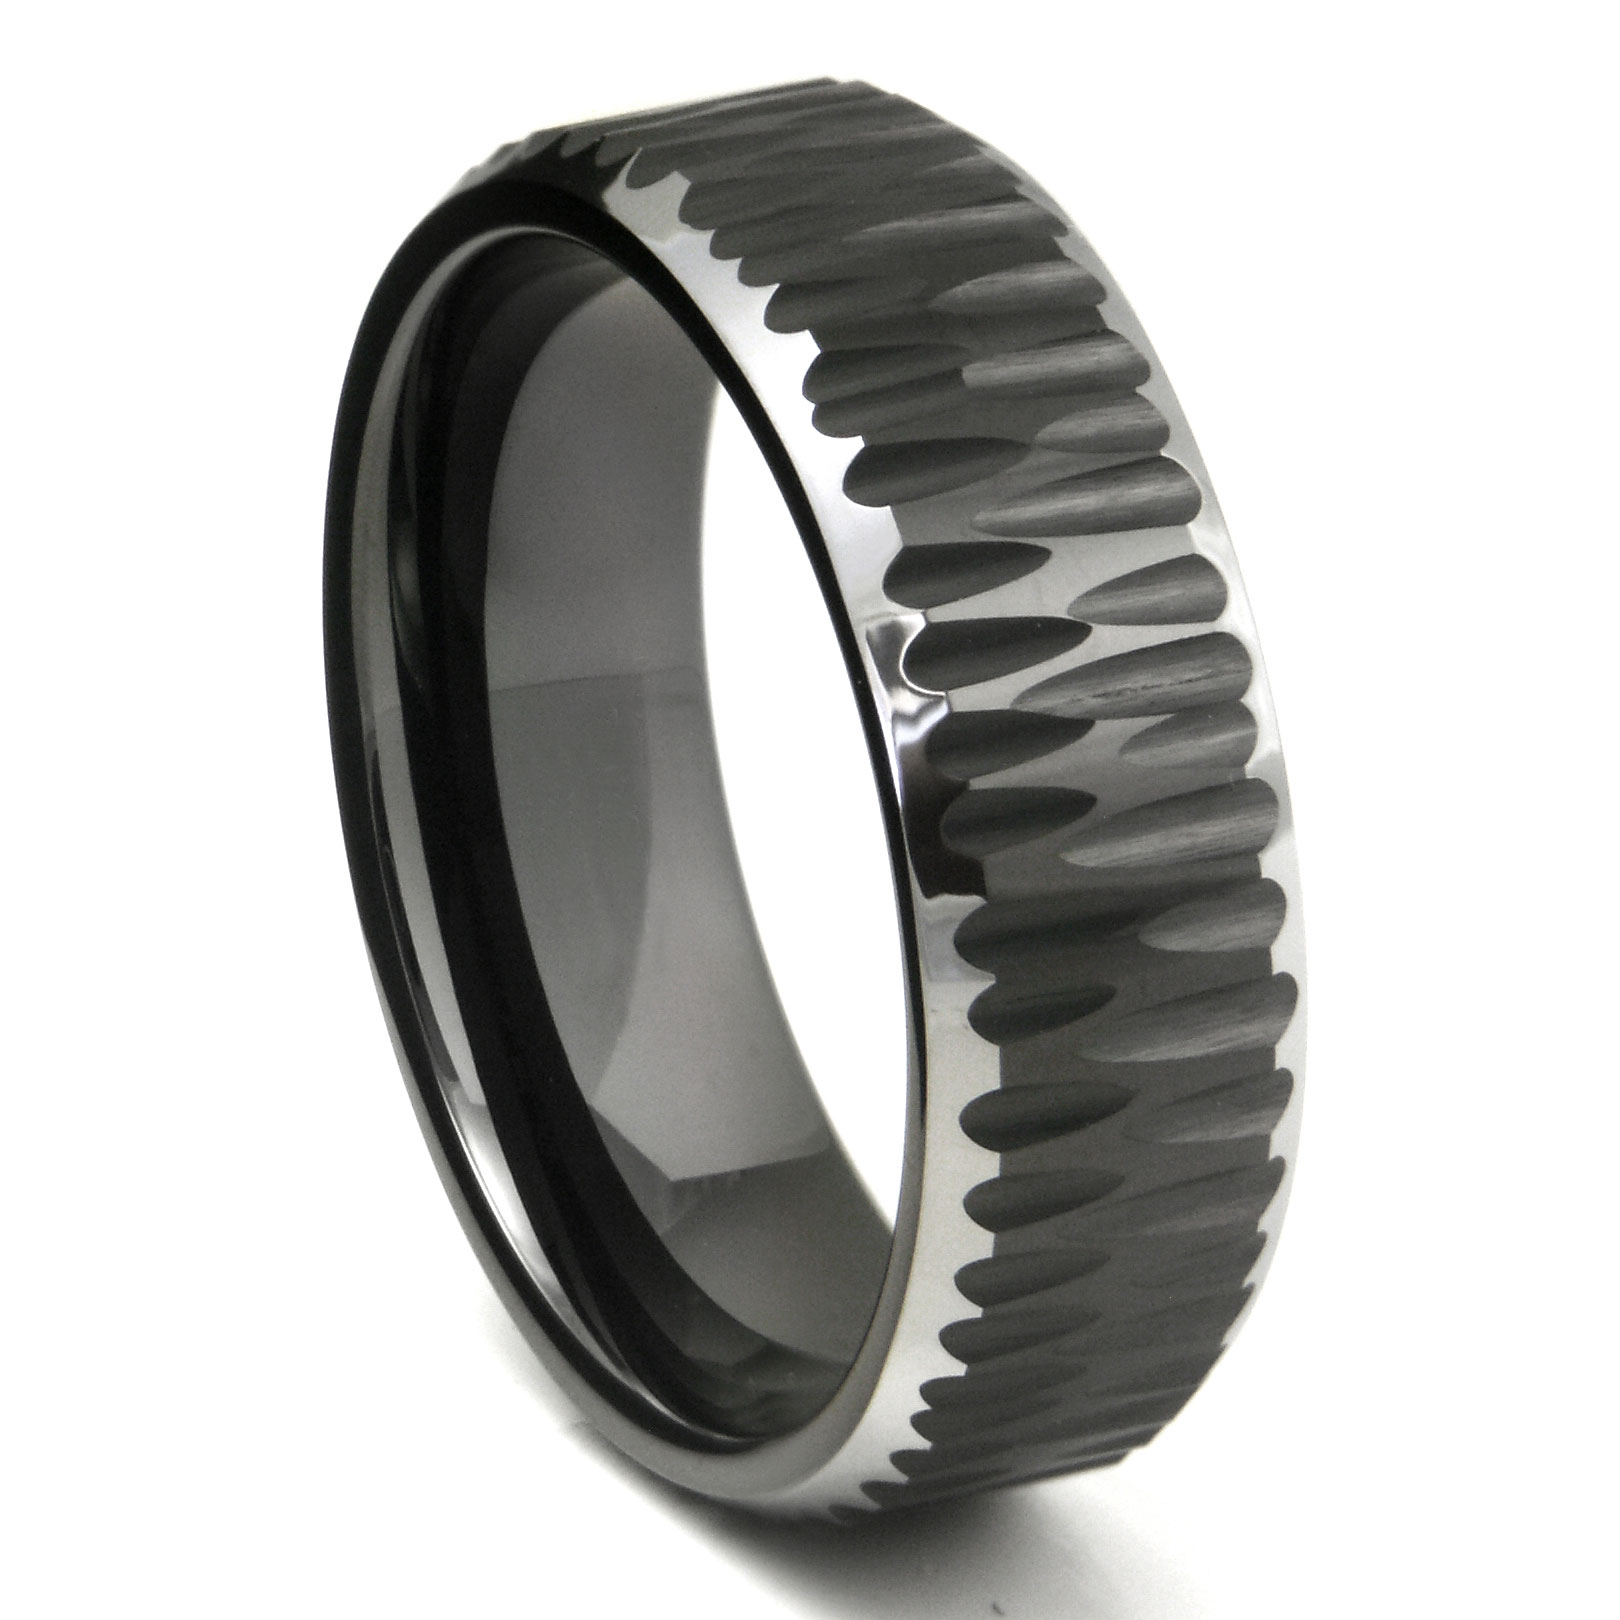 la bands edge bezel diamond wedding tungsten polished beveled brushed data black carbide band